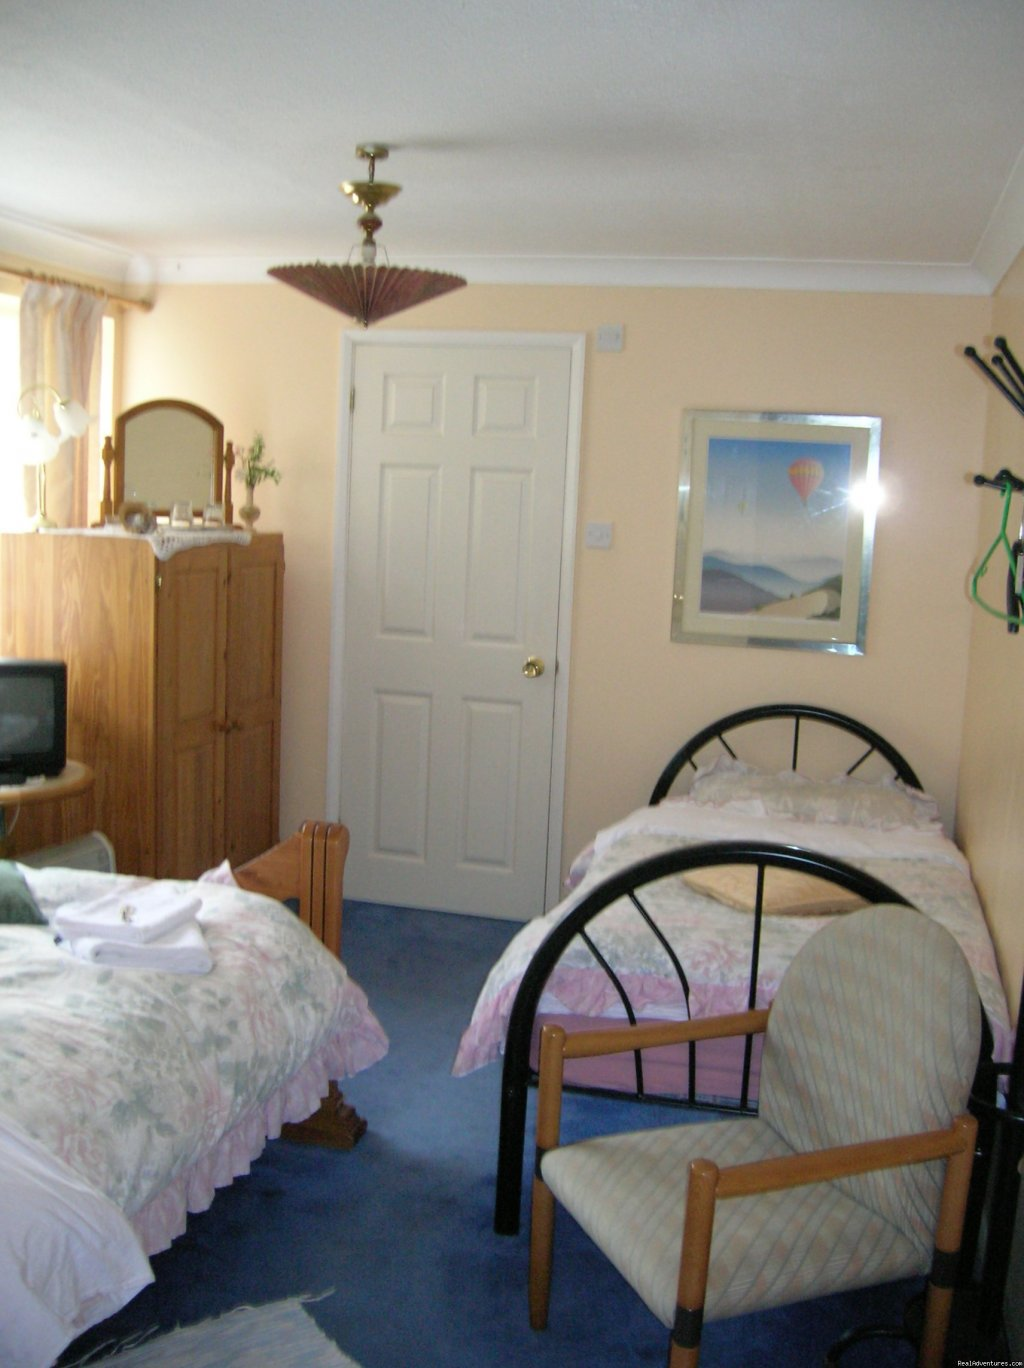 Family room sleeps upto 5 persons | Image #6/7 | Beautiful Guest house / b&b near Gatwick airport